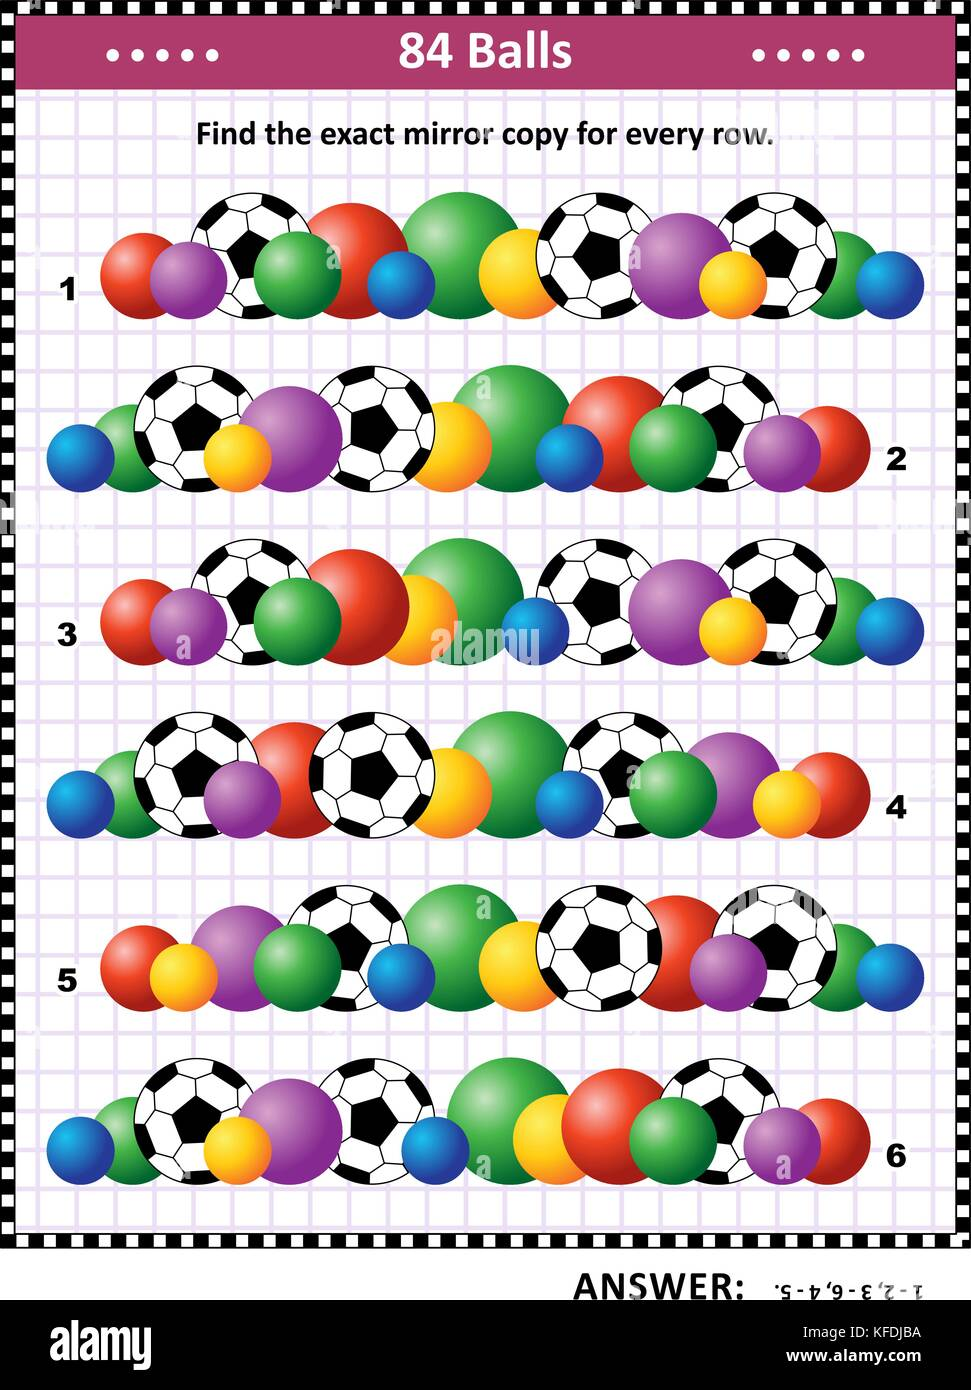 Soccer or football themed IQ training picture puzzle: Match the pairs - find the exact mirror copy for every row - Stock Image